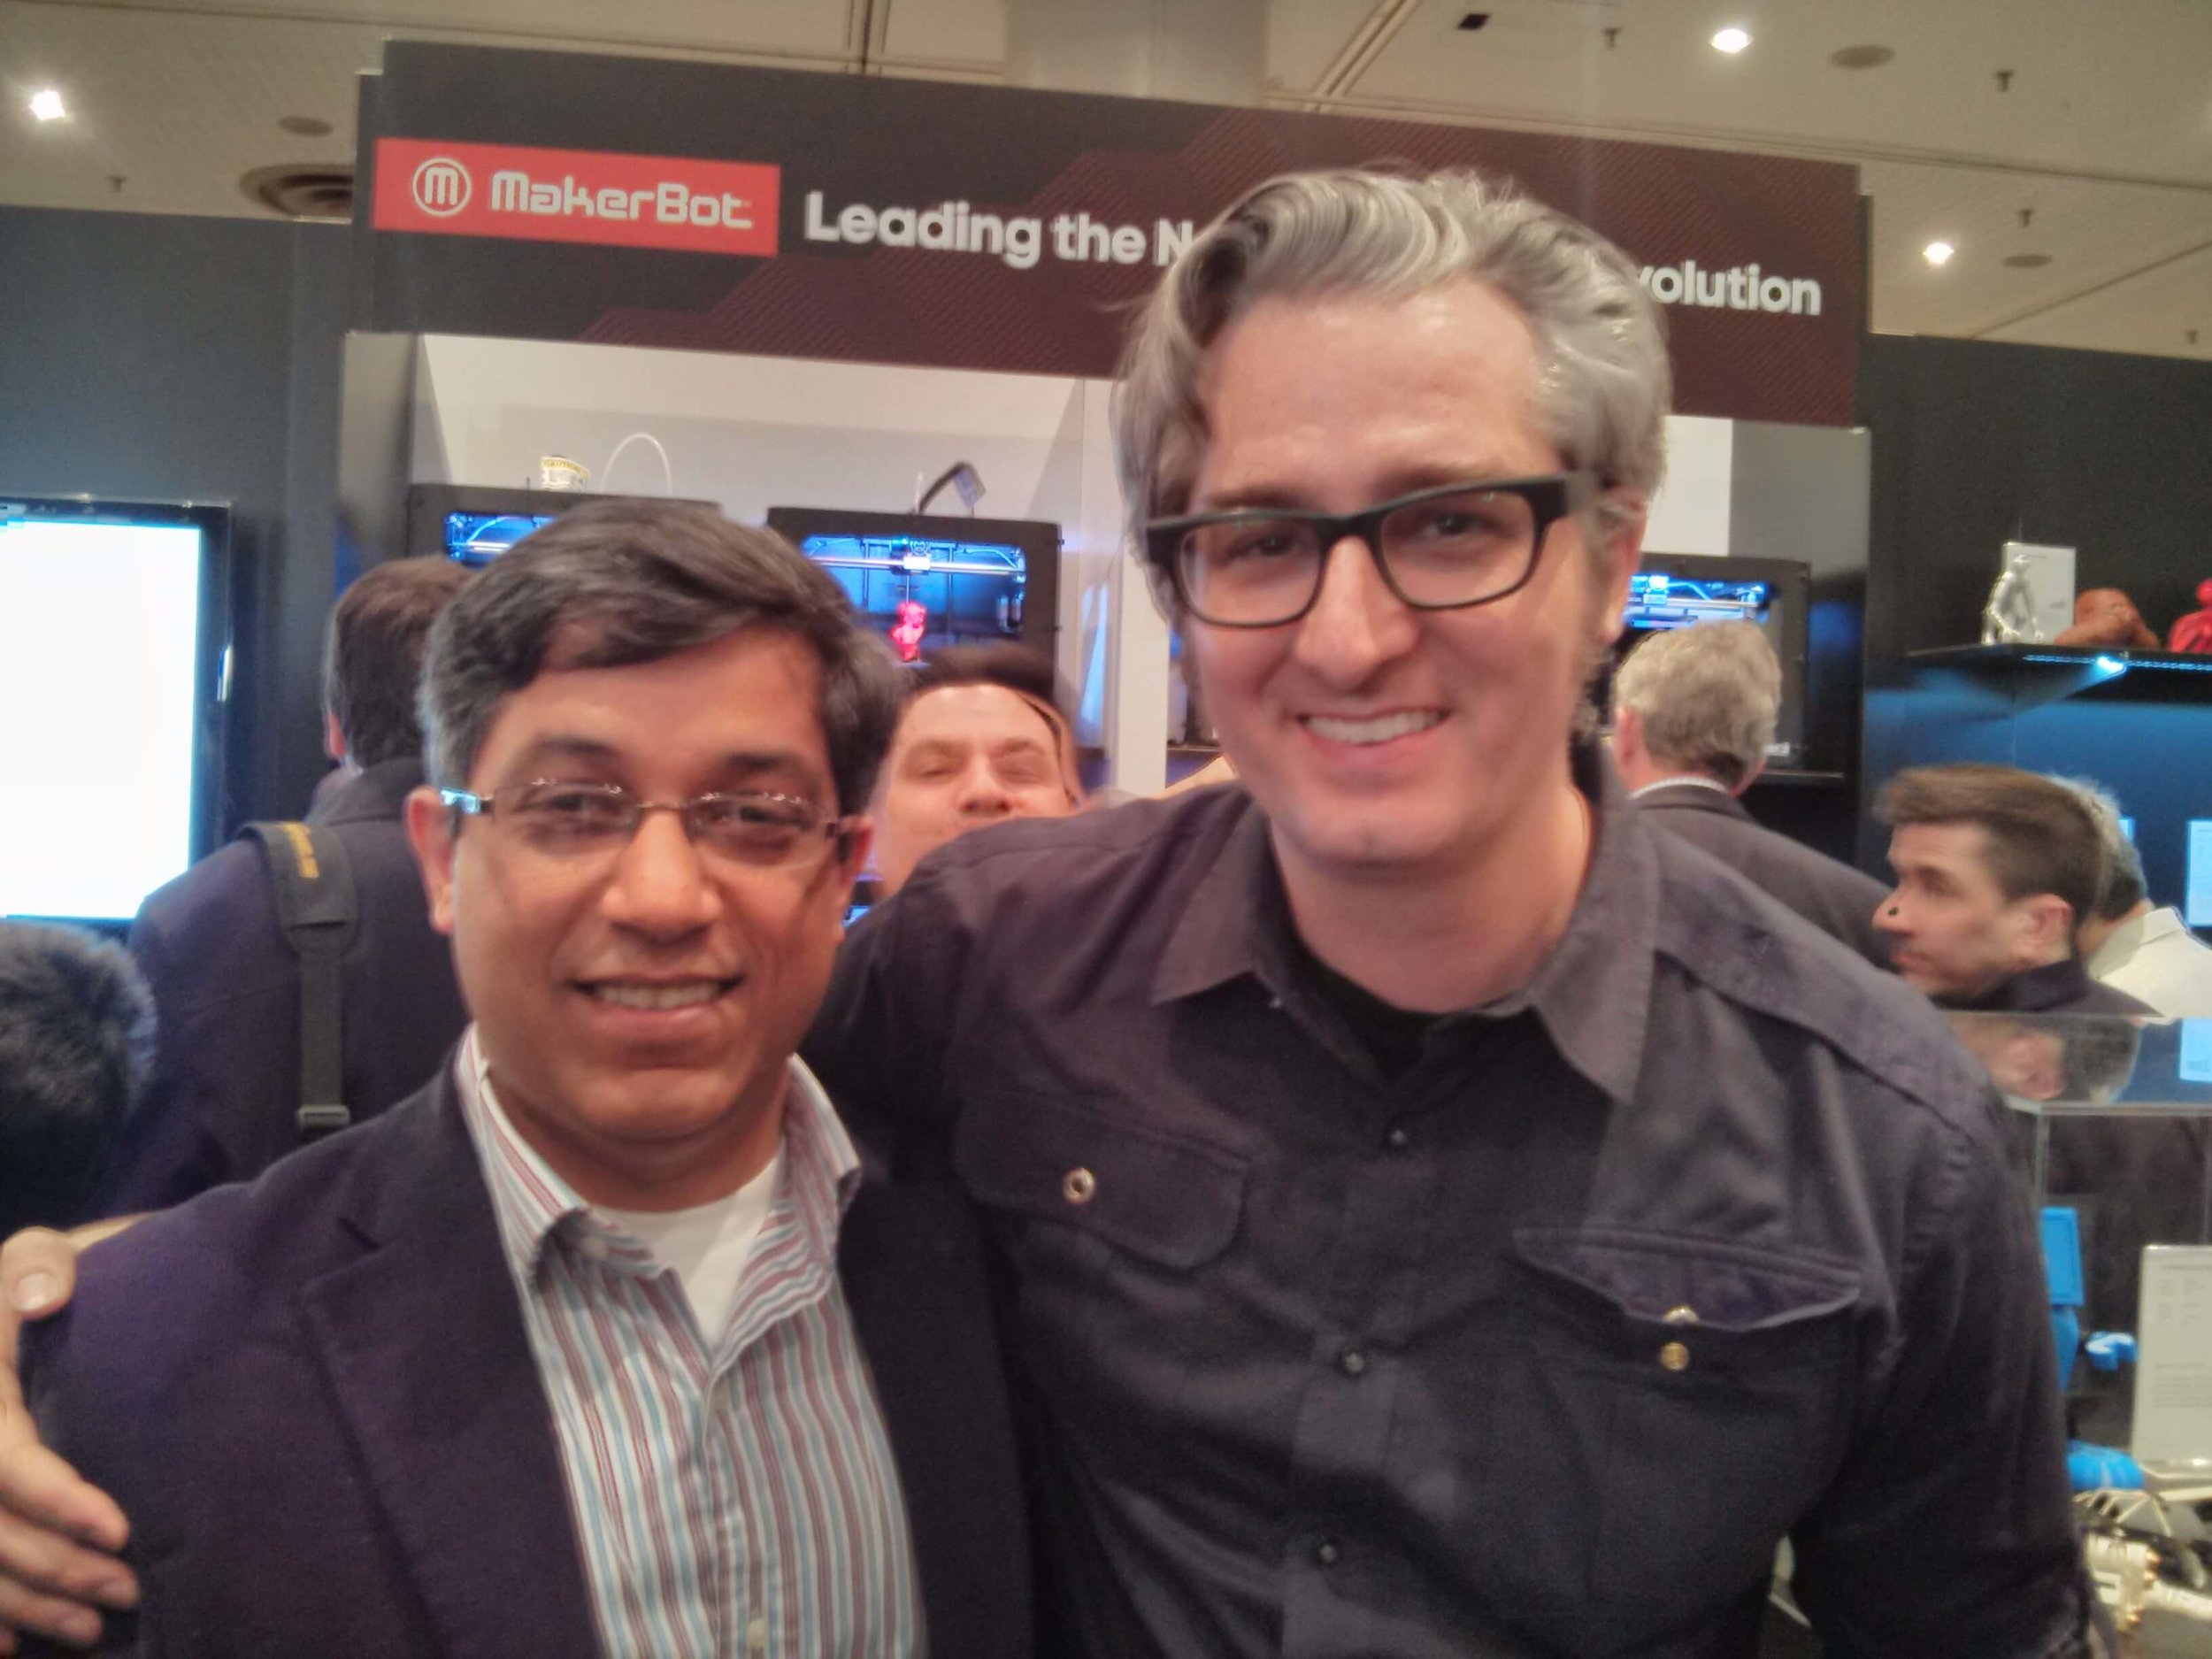 MakerLab Director Vishal Sachdev rubbing shoulders with MakerBot CEO, Bre Pettis.